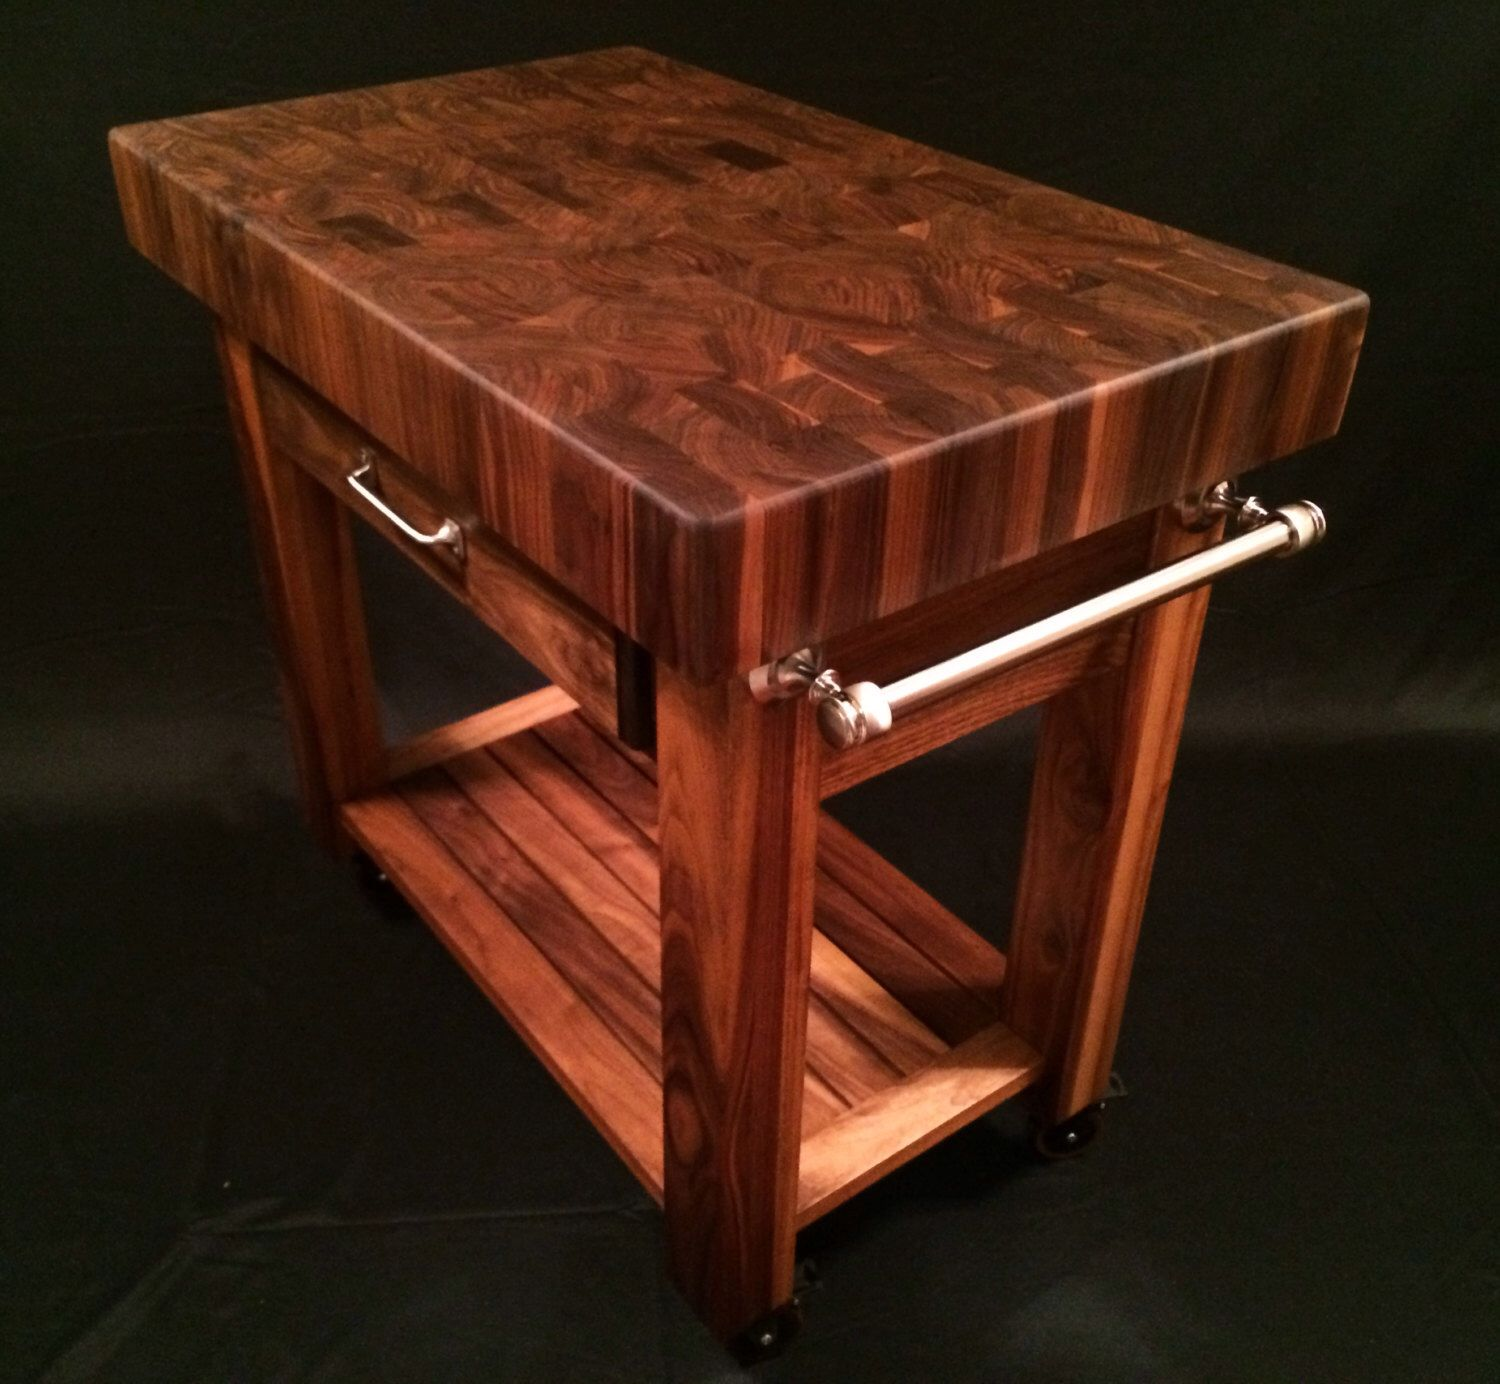 Solid Black Walnut Butcher Block Cart Or Kitchen Island. The Entire Cart Is  Solid Black Walnut. You Will Not Find Better Craftsmanship Anywhere, And Tu2026